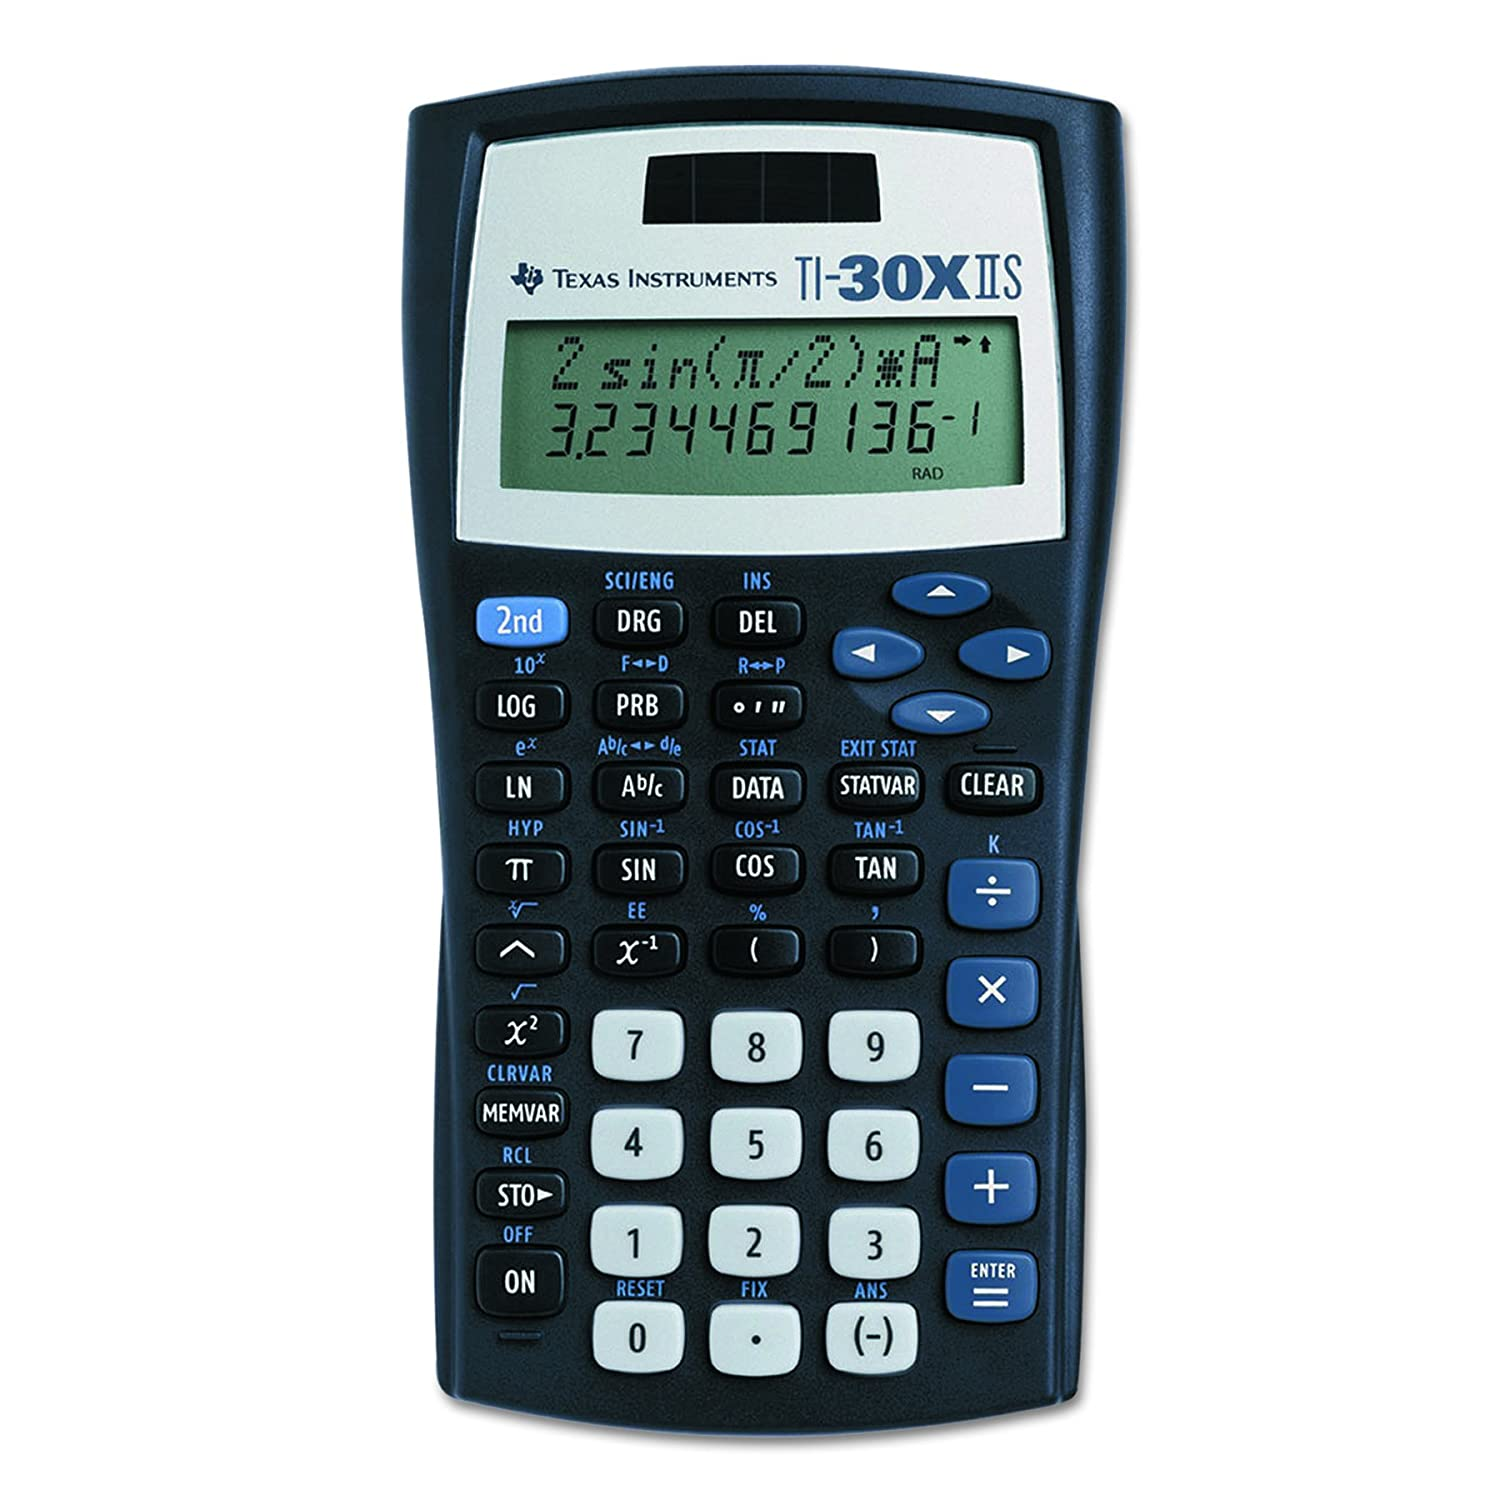 TI-30X IIS 2-Line Scientific Calculator, Black with Blue Accents